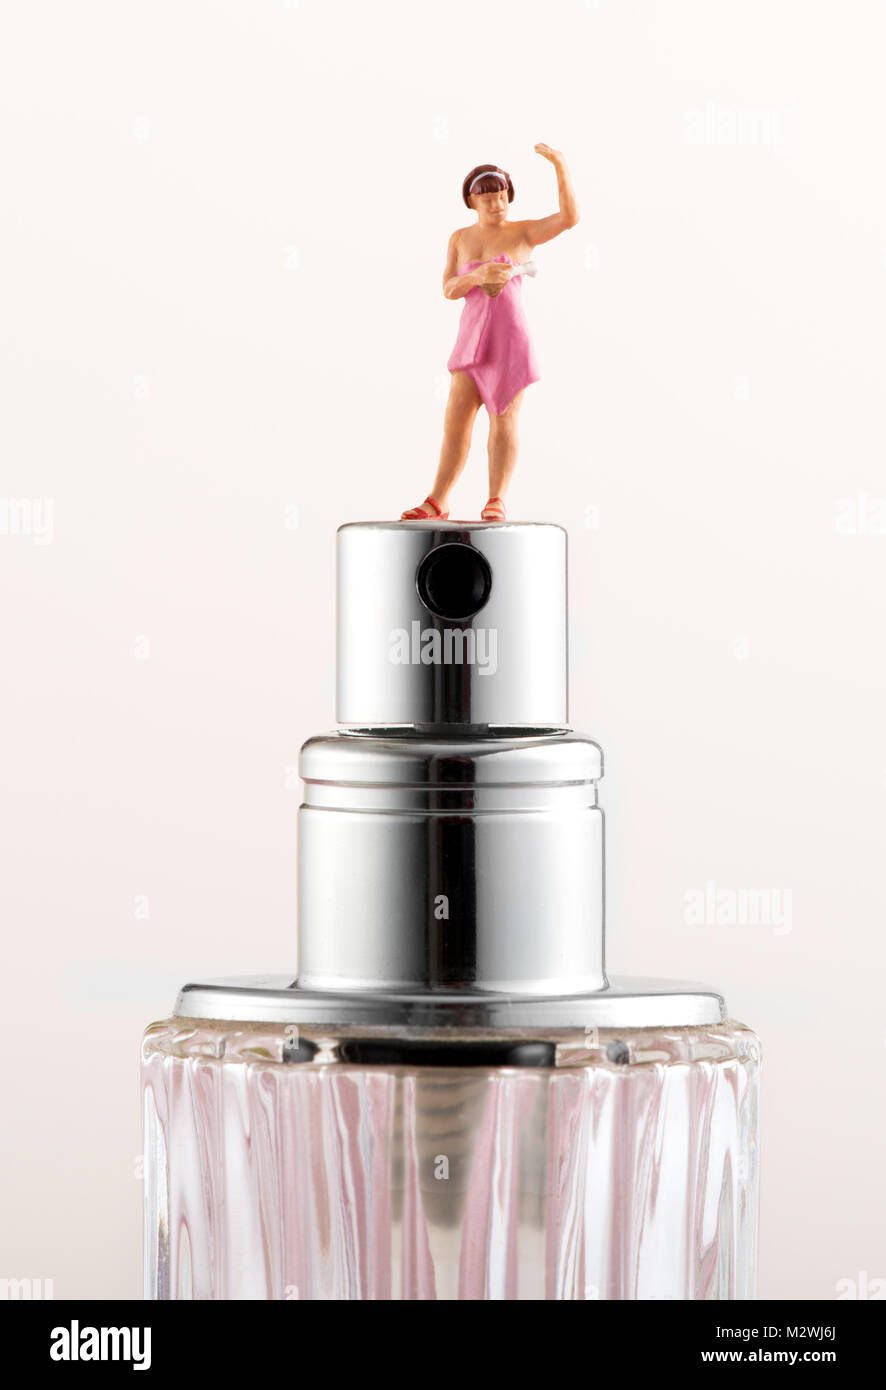 Miniature woman with a towel wrapped round her on top of the atomiser of a scent bottle in a concept of personal - Stock Image